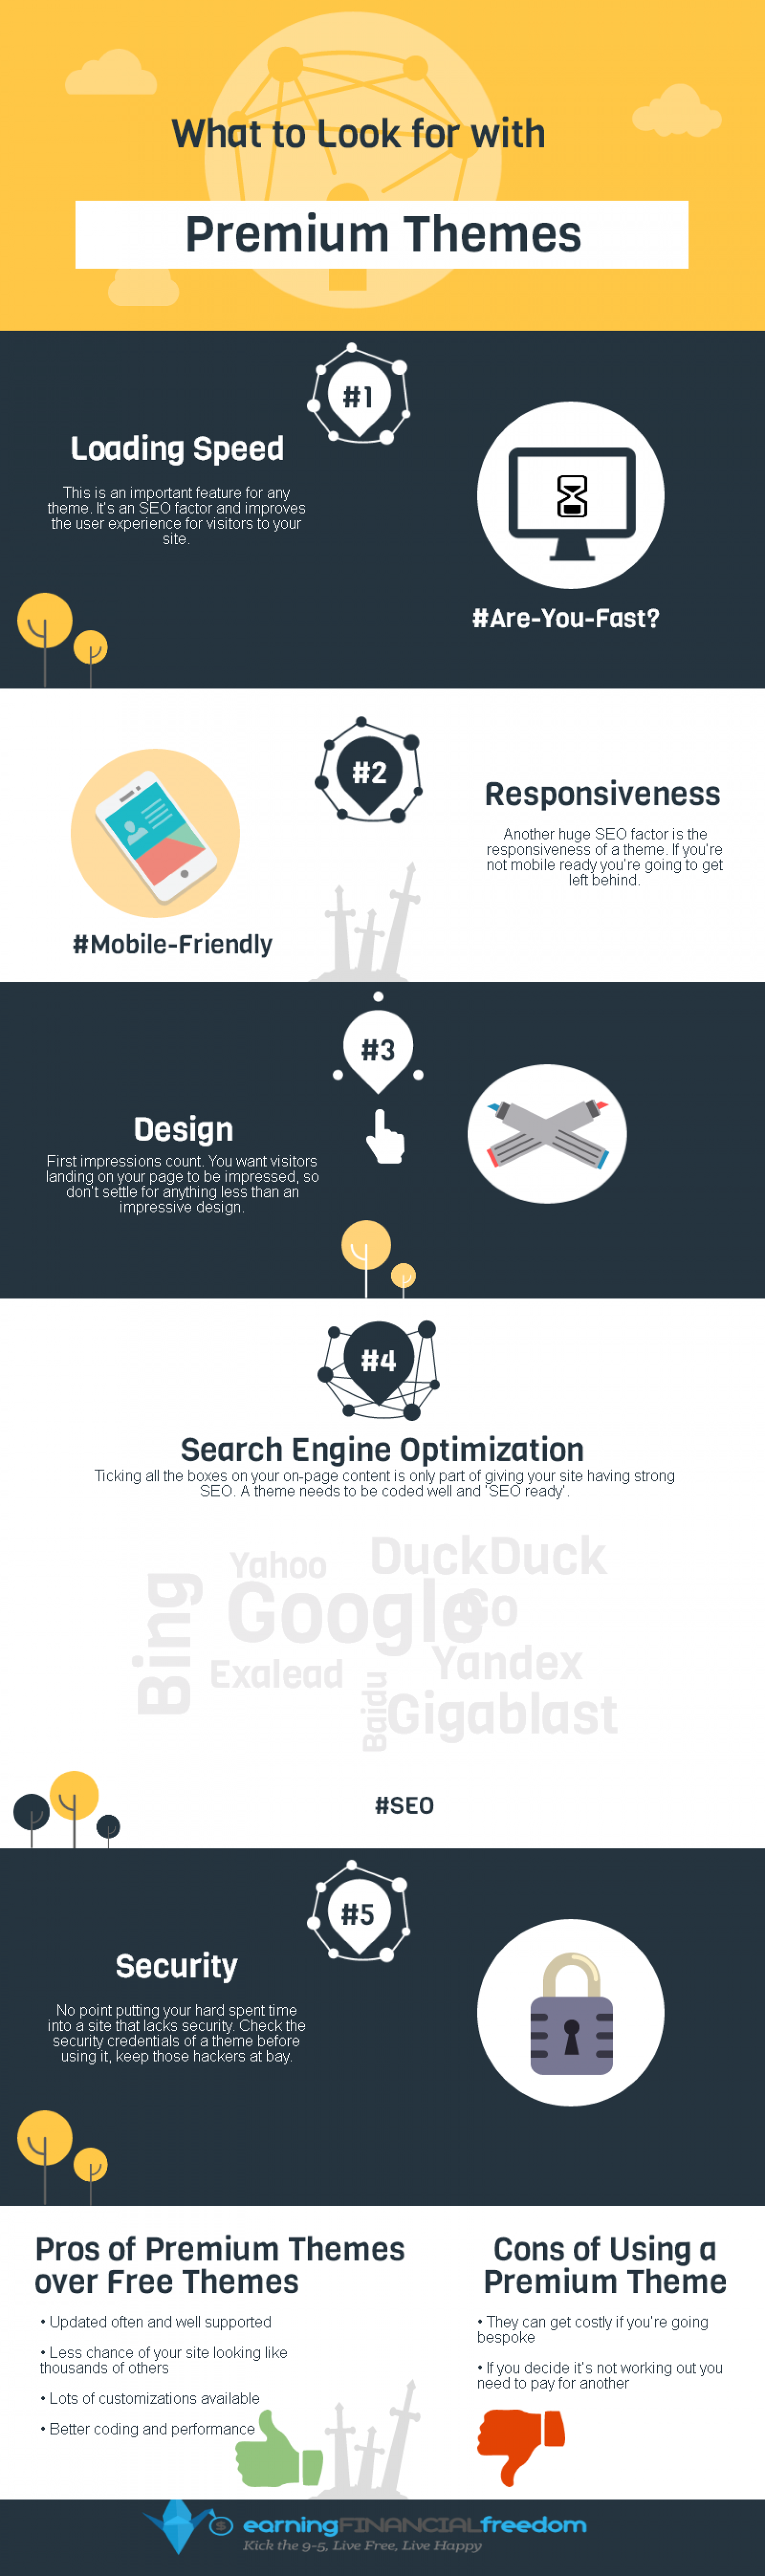 What to Look for When Buying a Premium Theme Infographic